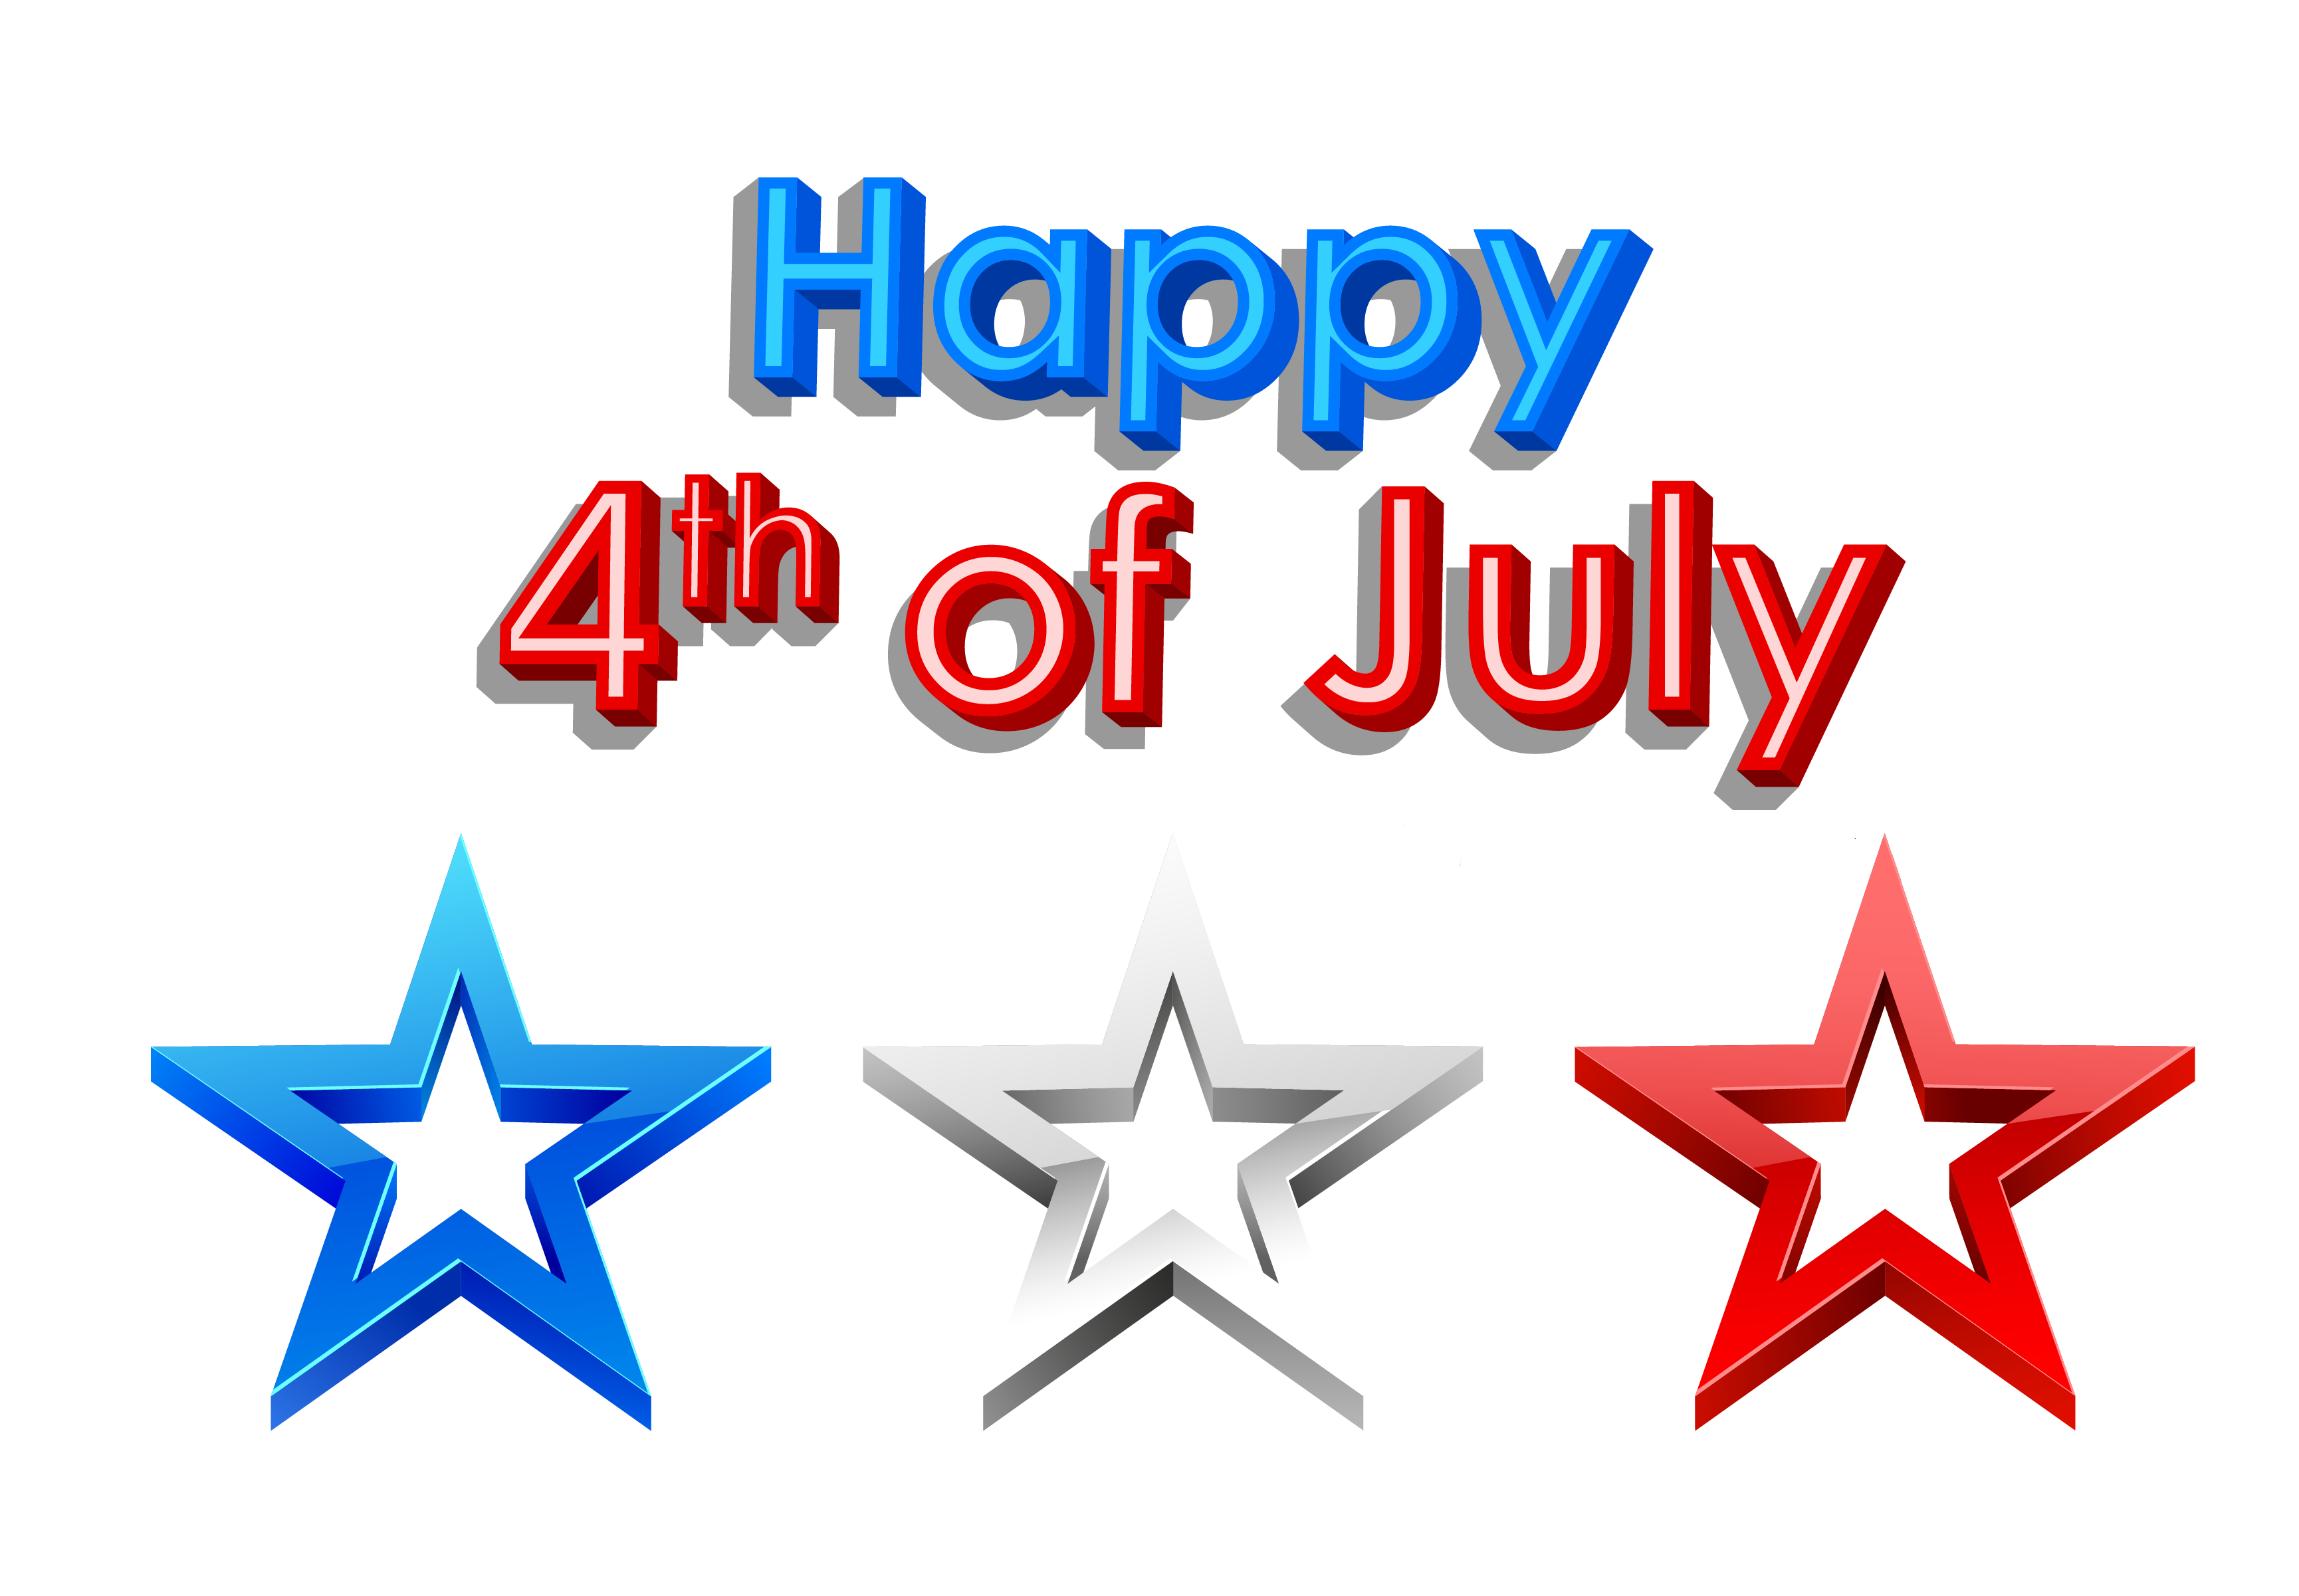 Fourth of july 4th of july fireworks clipart free